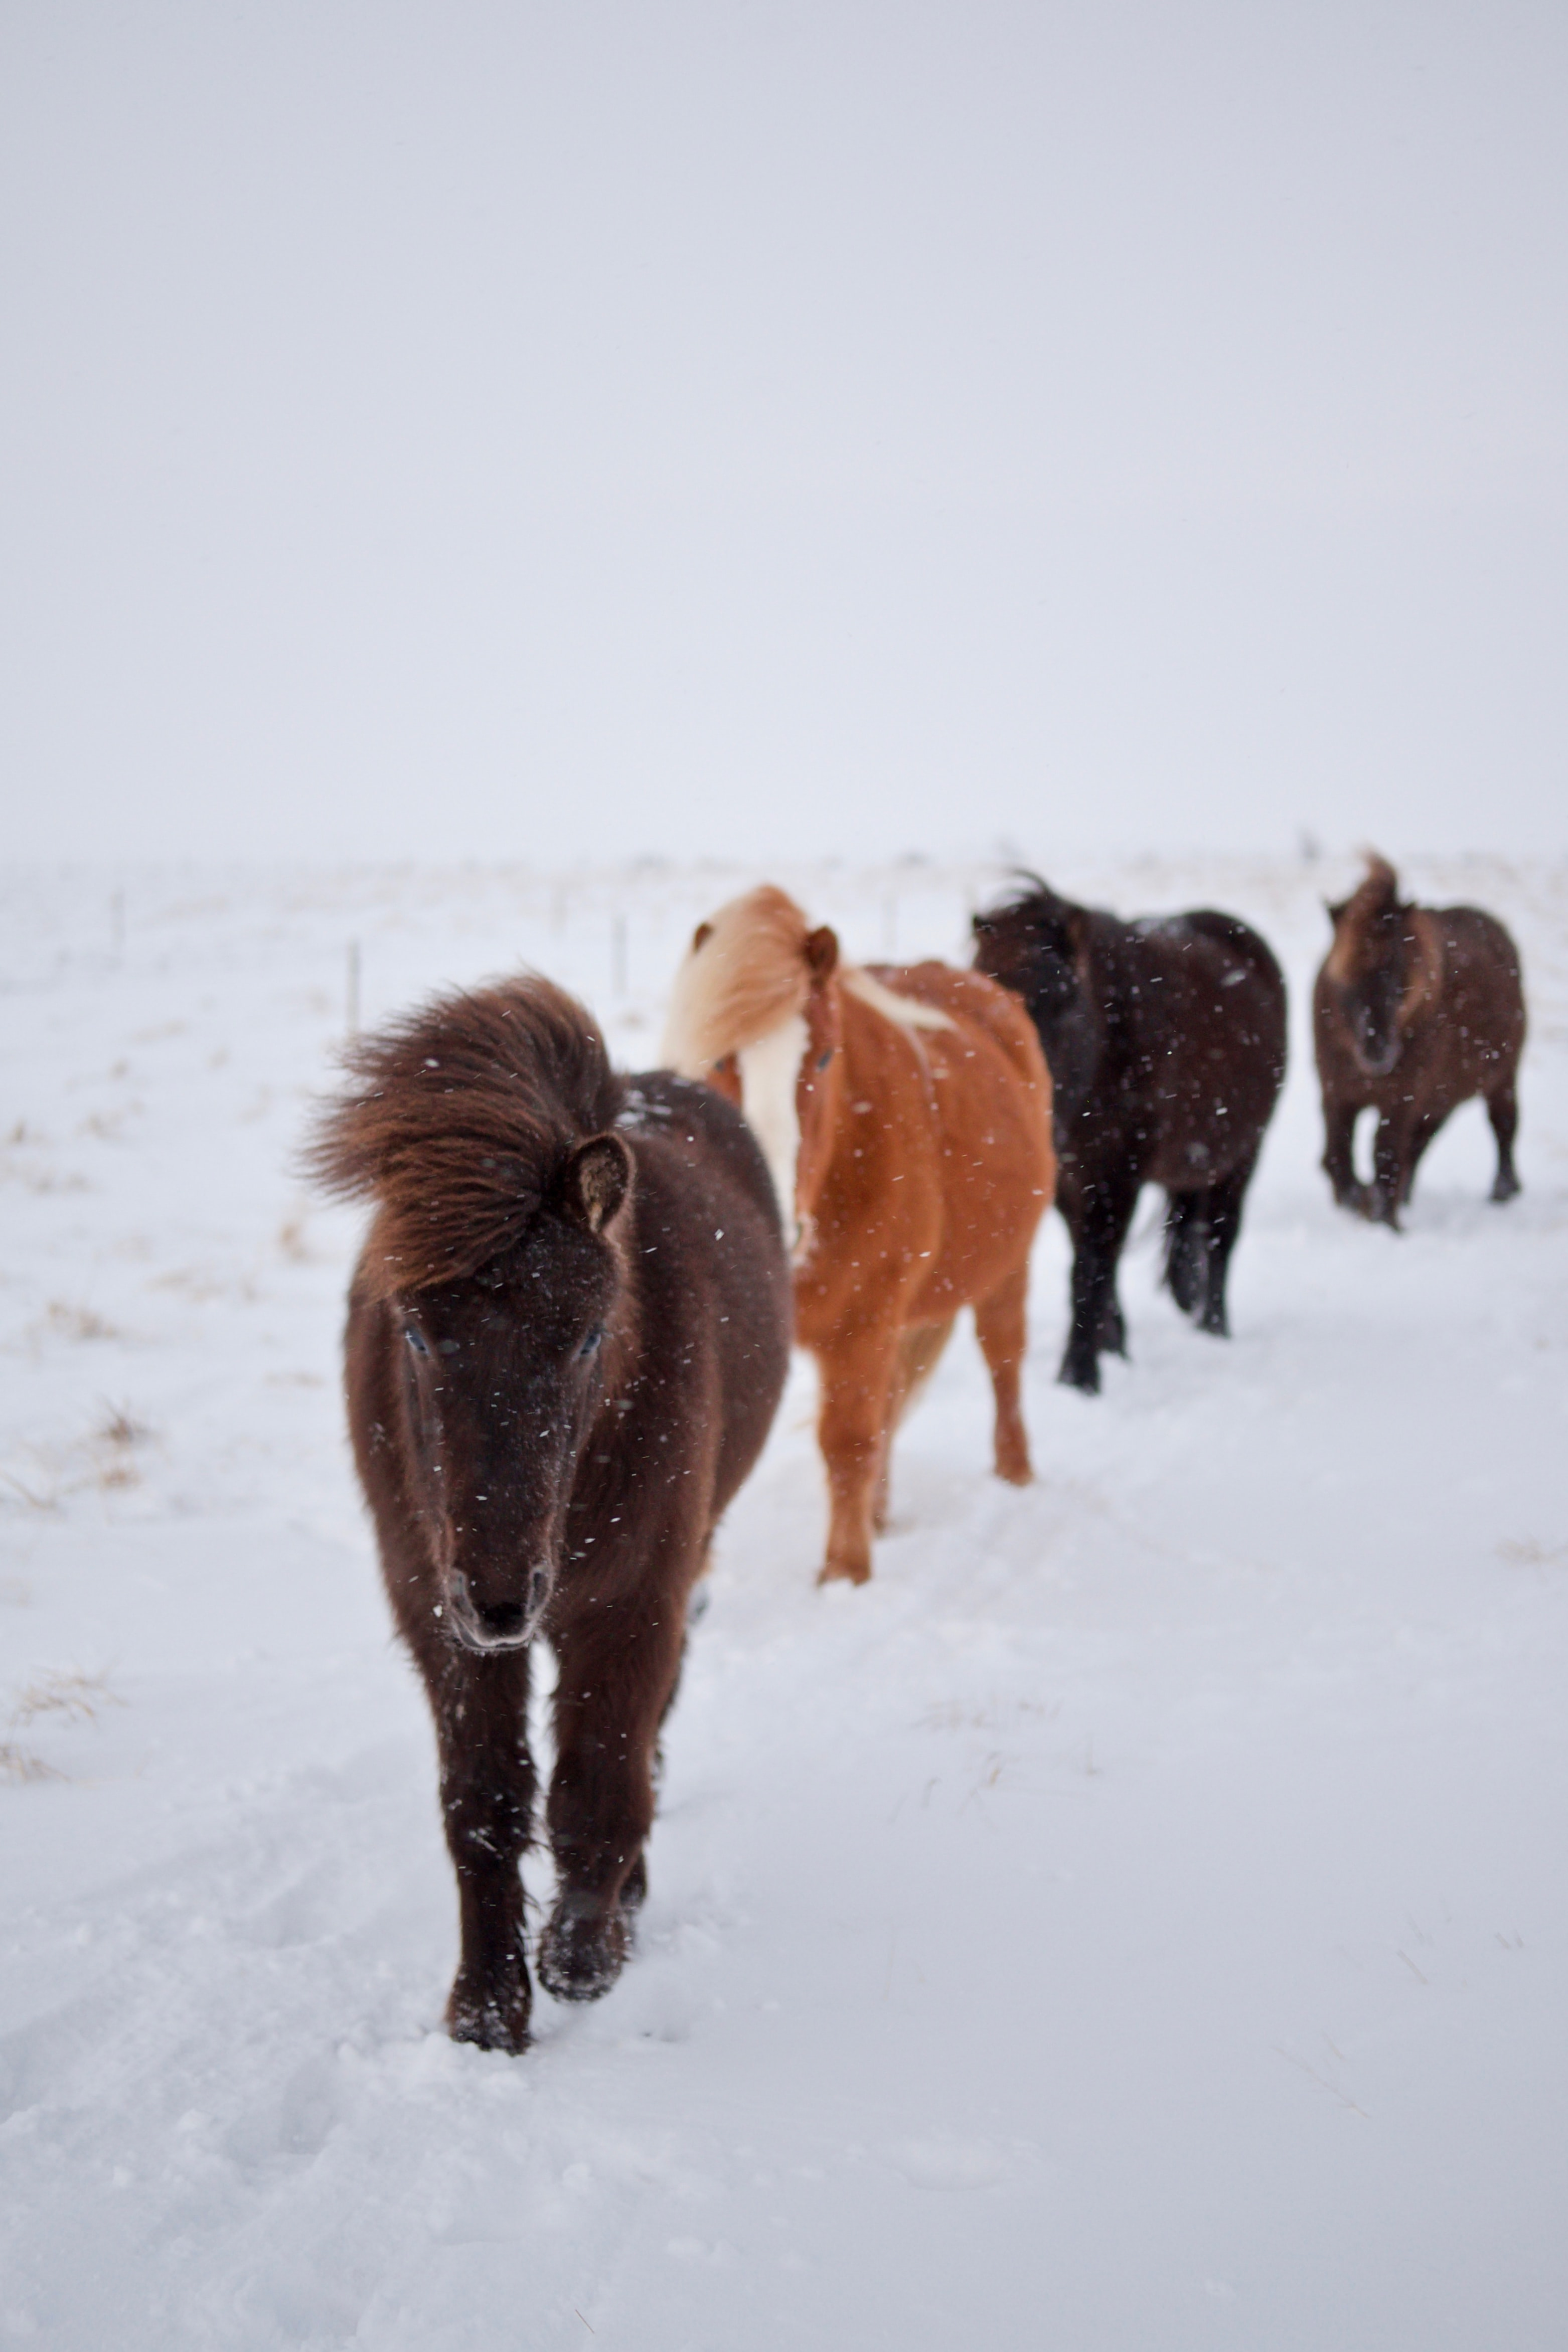 several horses walking on white snow during daytime